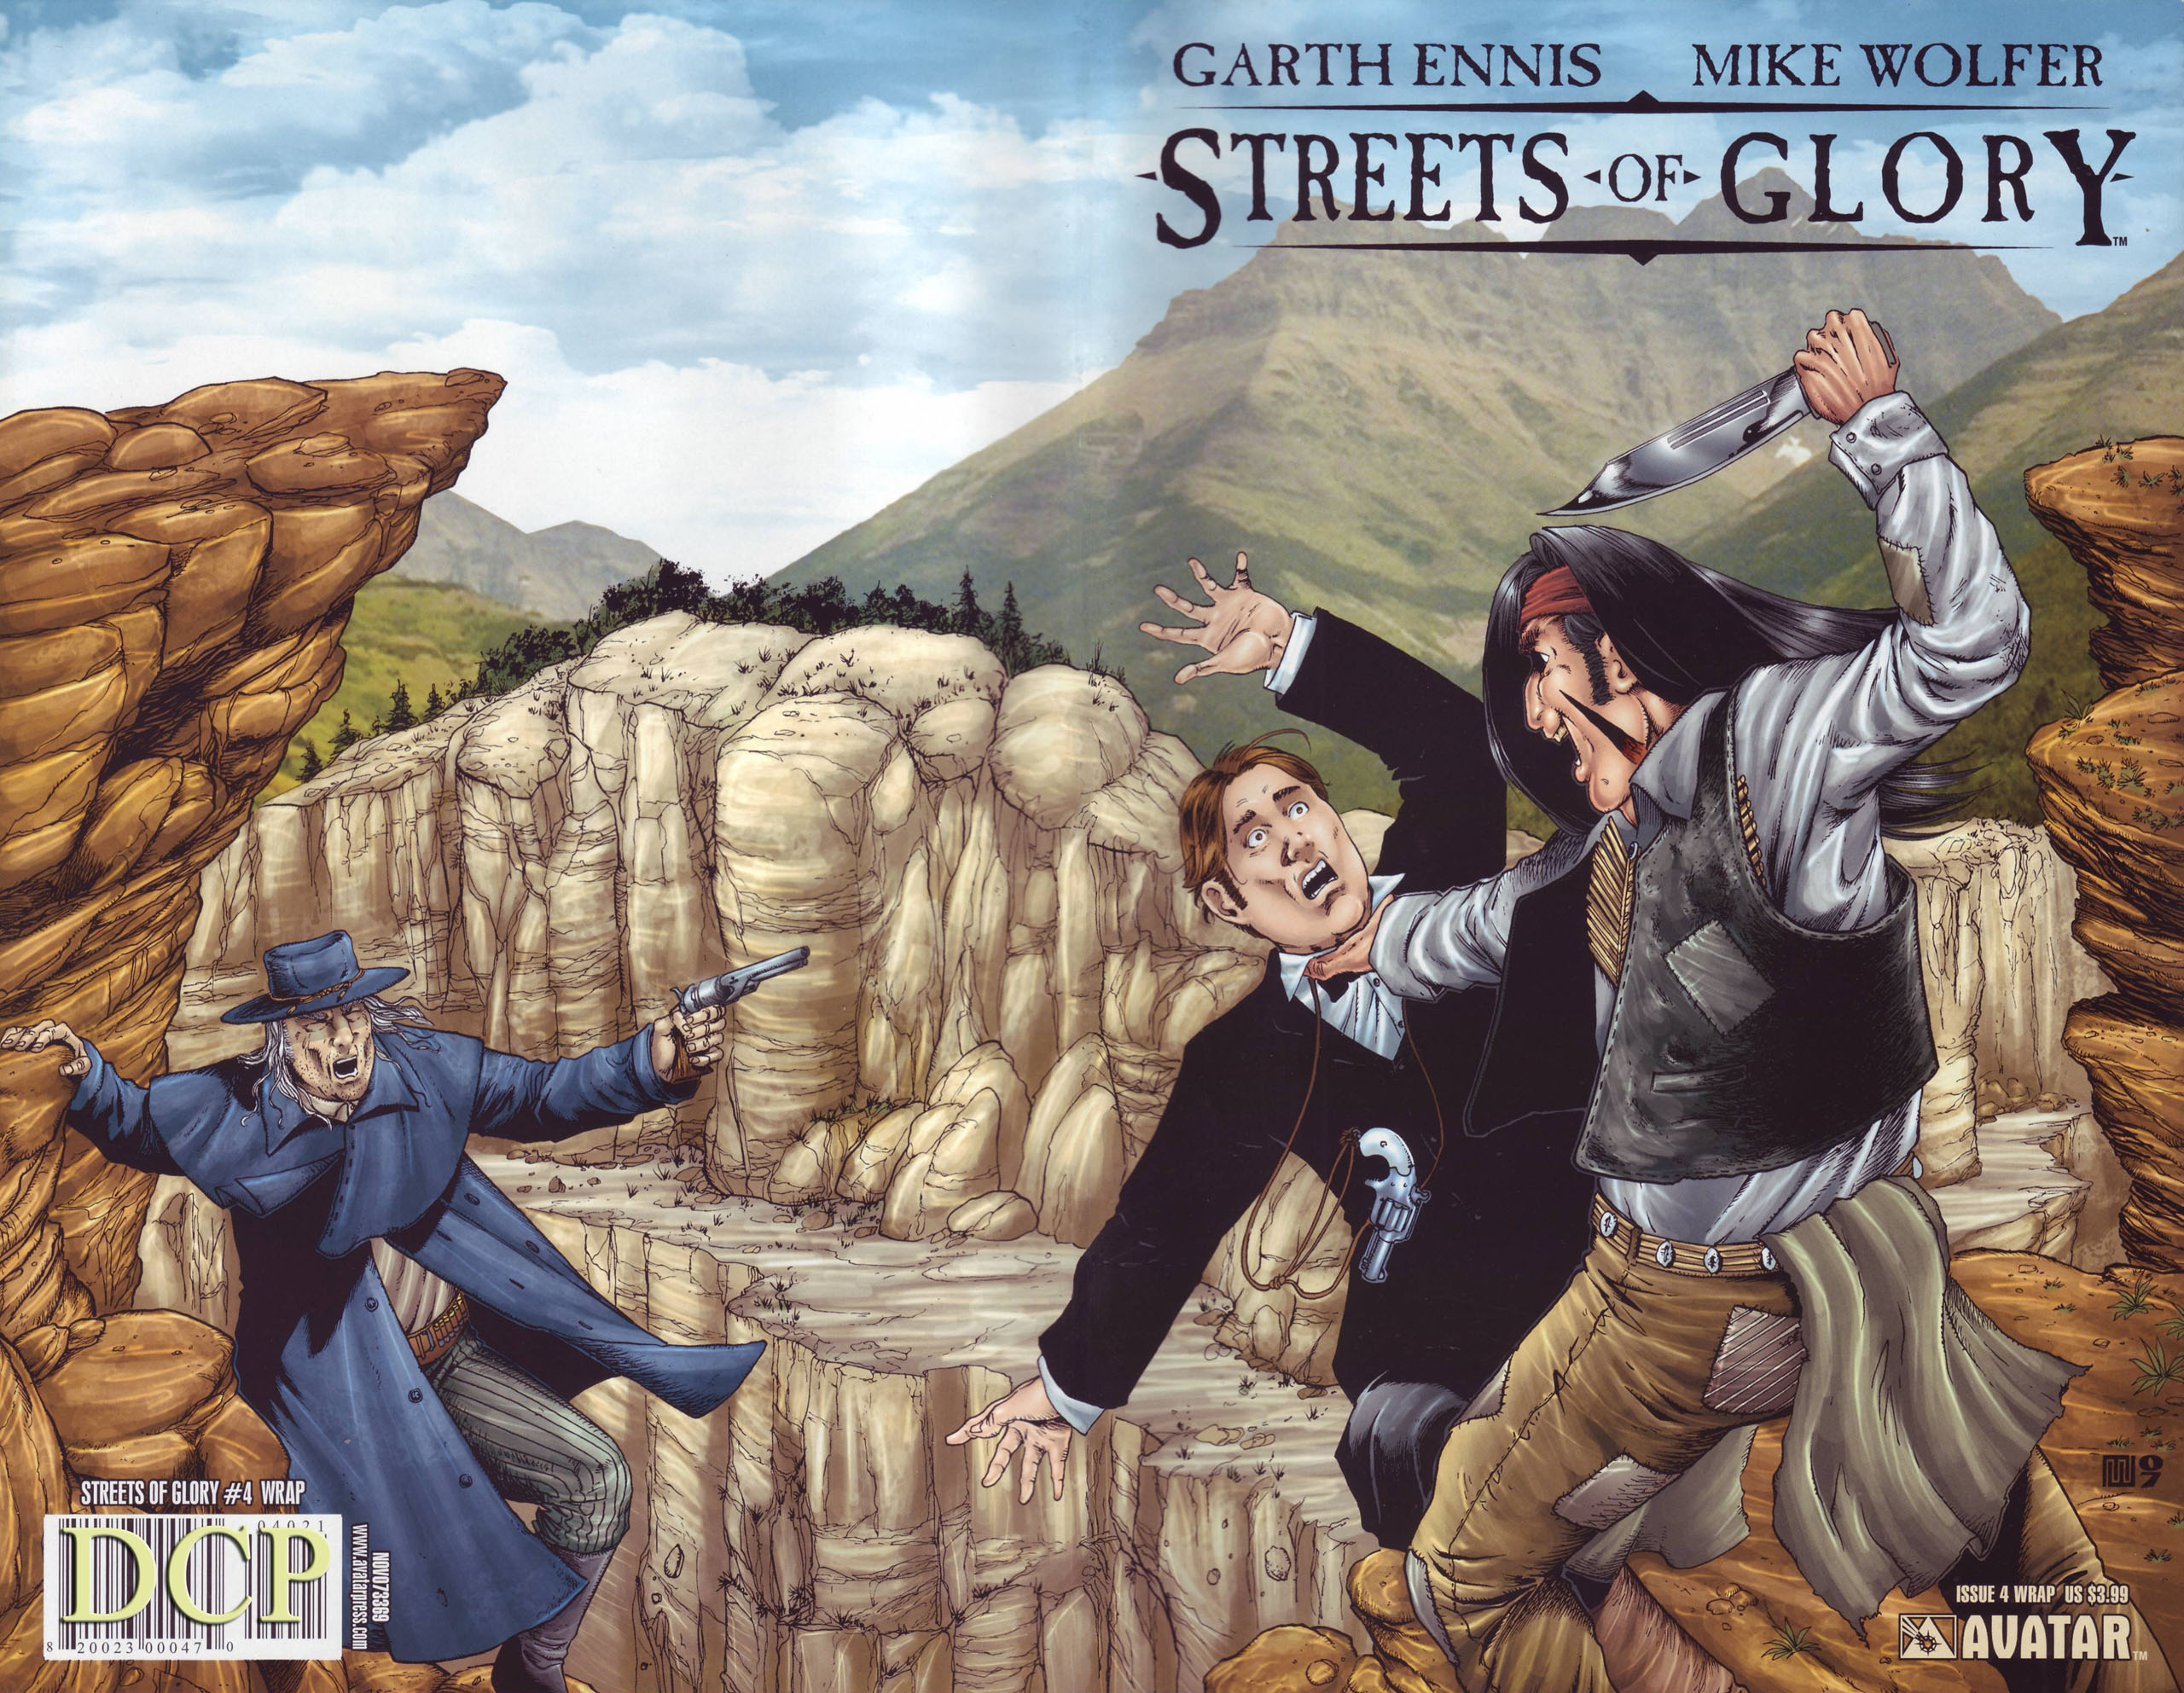 Read online Garth Ennis' Streets of Glory comic -  Issue #4 - 1